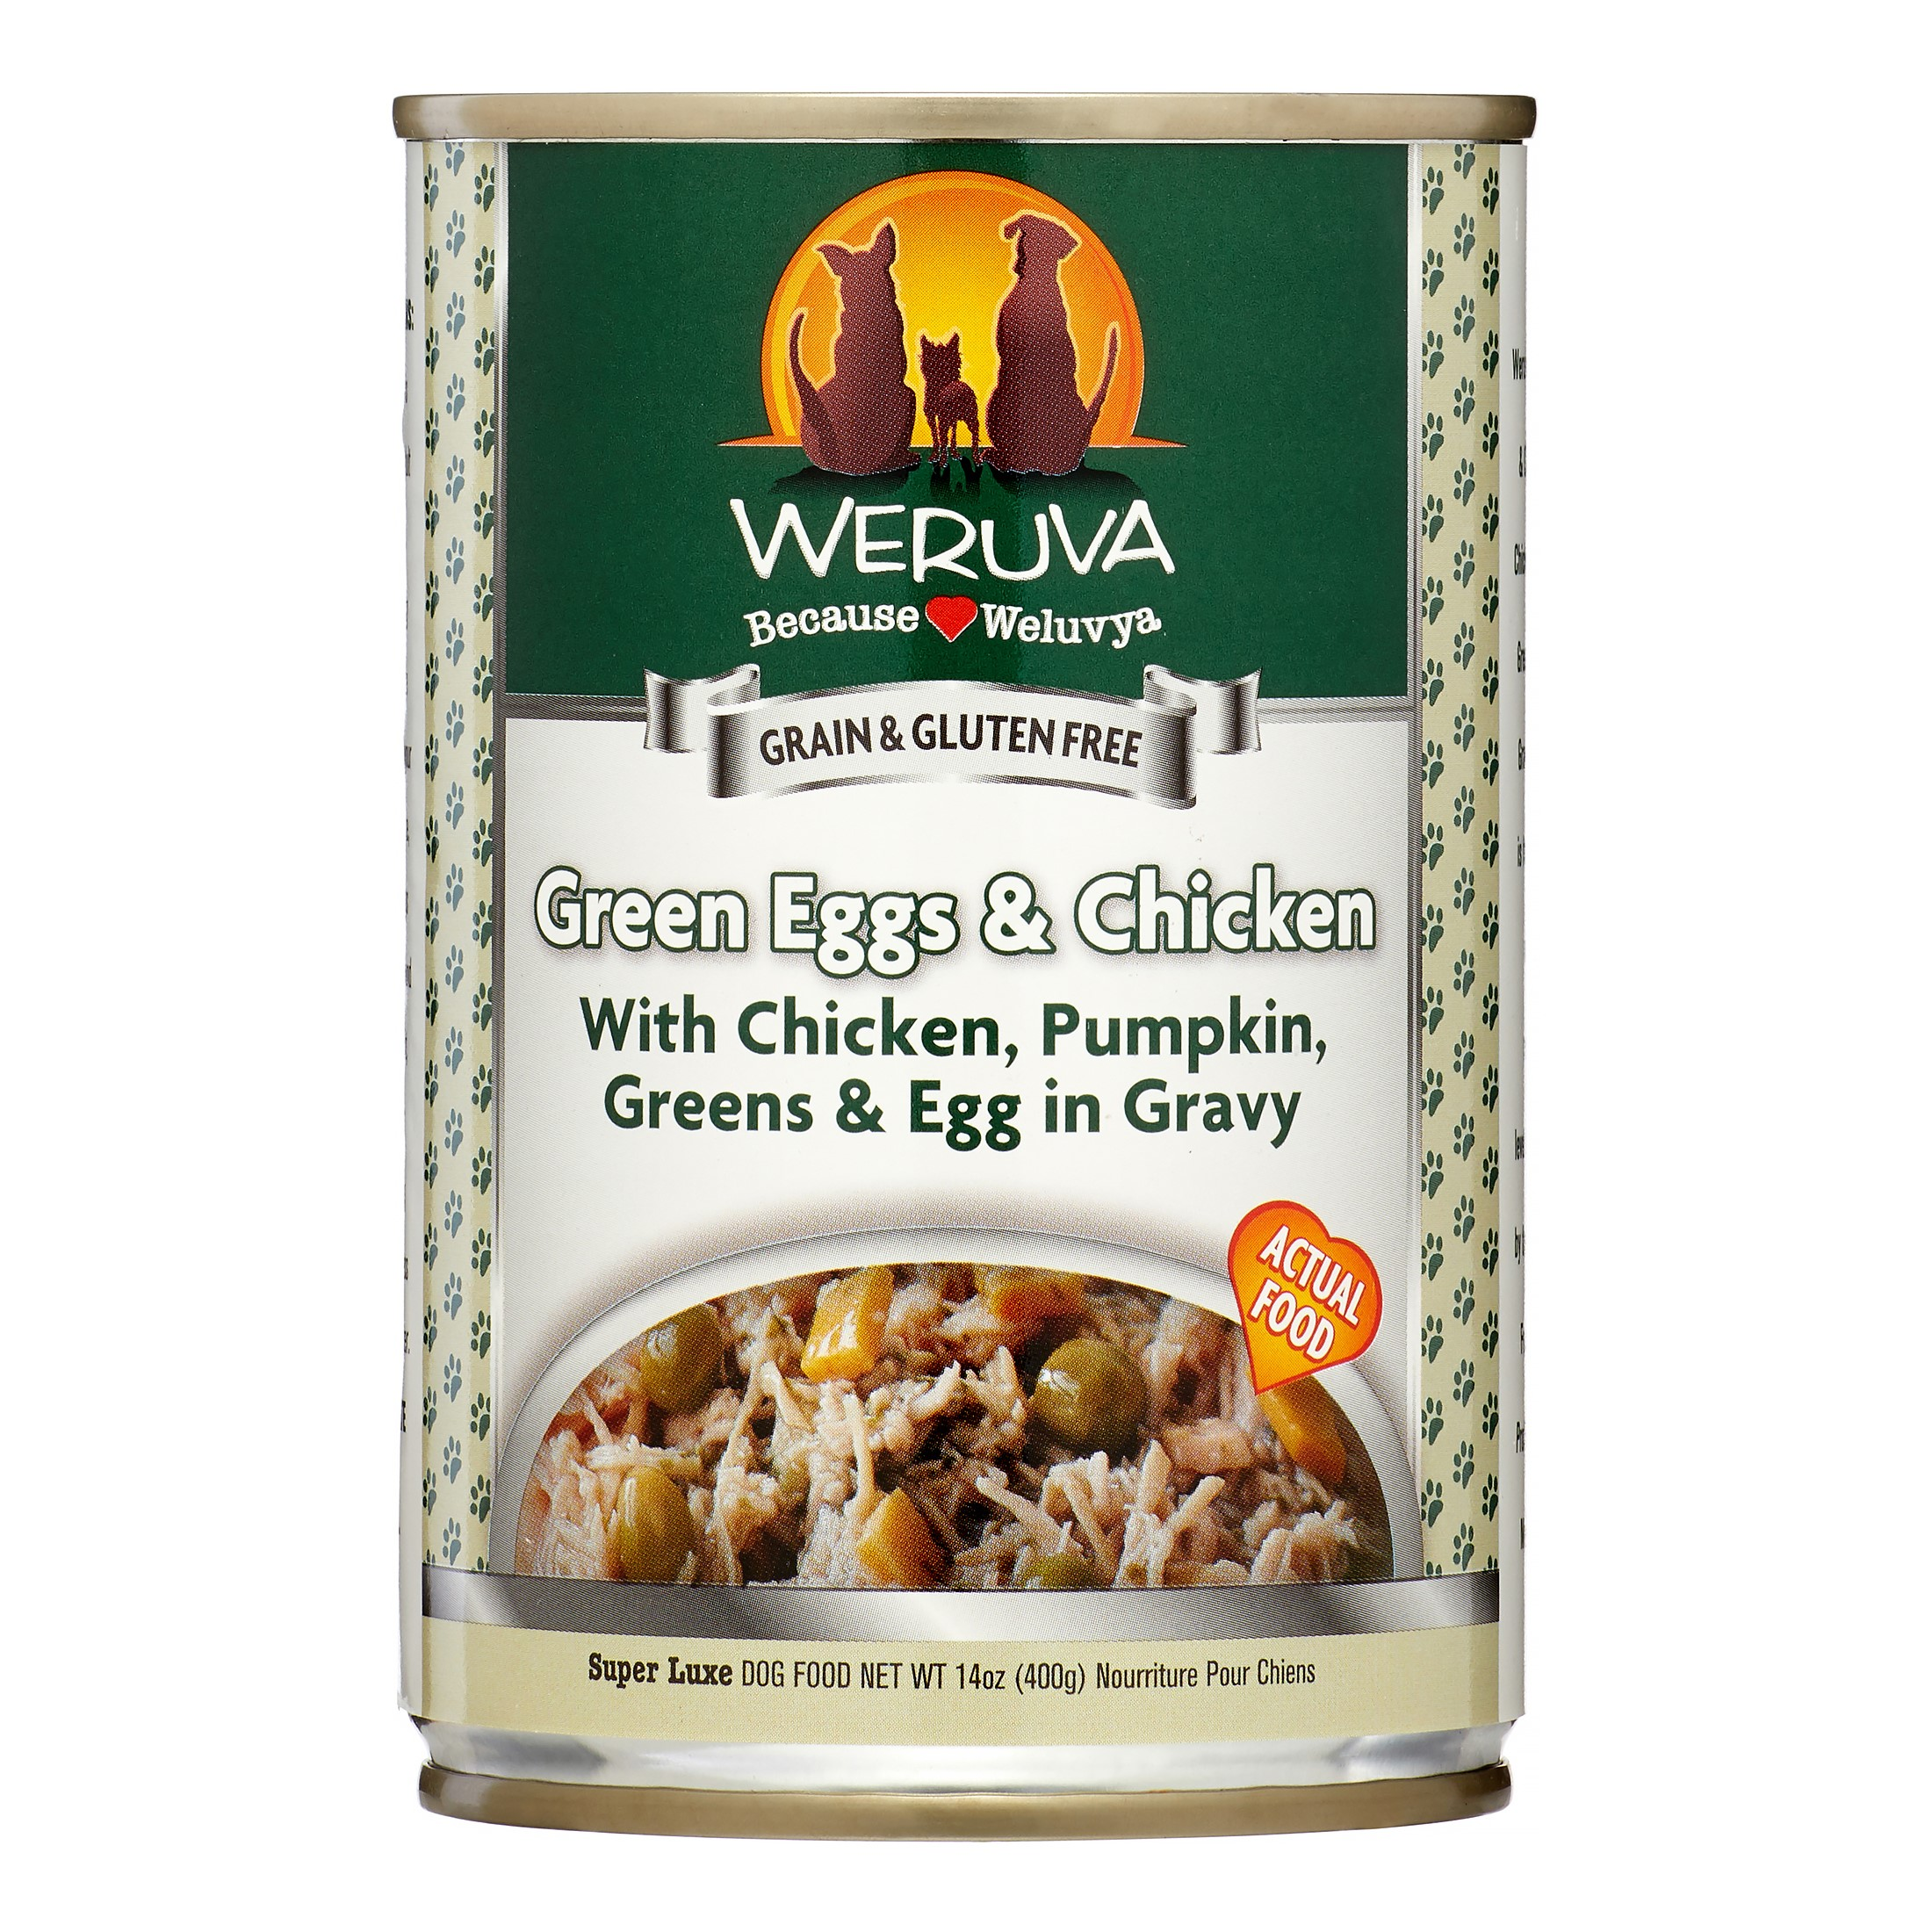 Weruva Human Style Green Eggs & Chicken, Egg & Greens in Gravy Adult Wet Dog Food, 14 Oz, Pack of 12